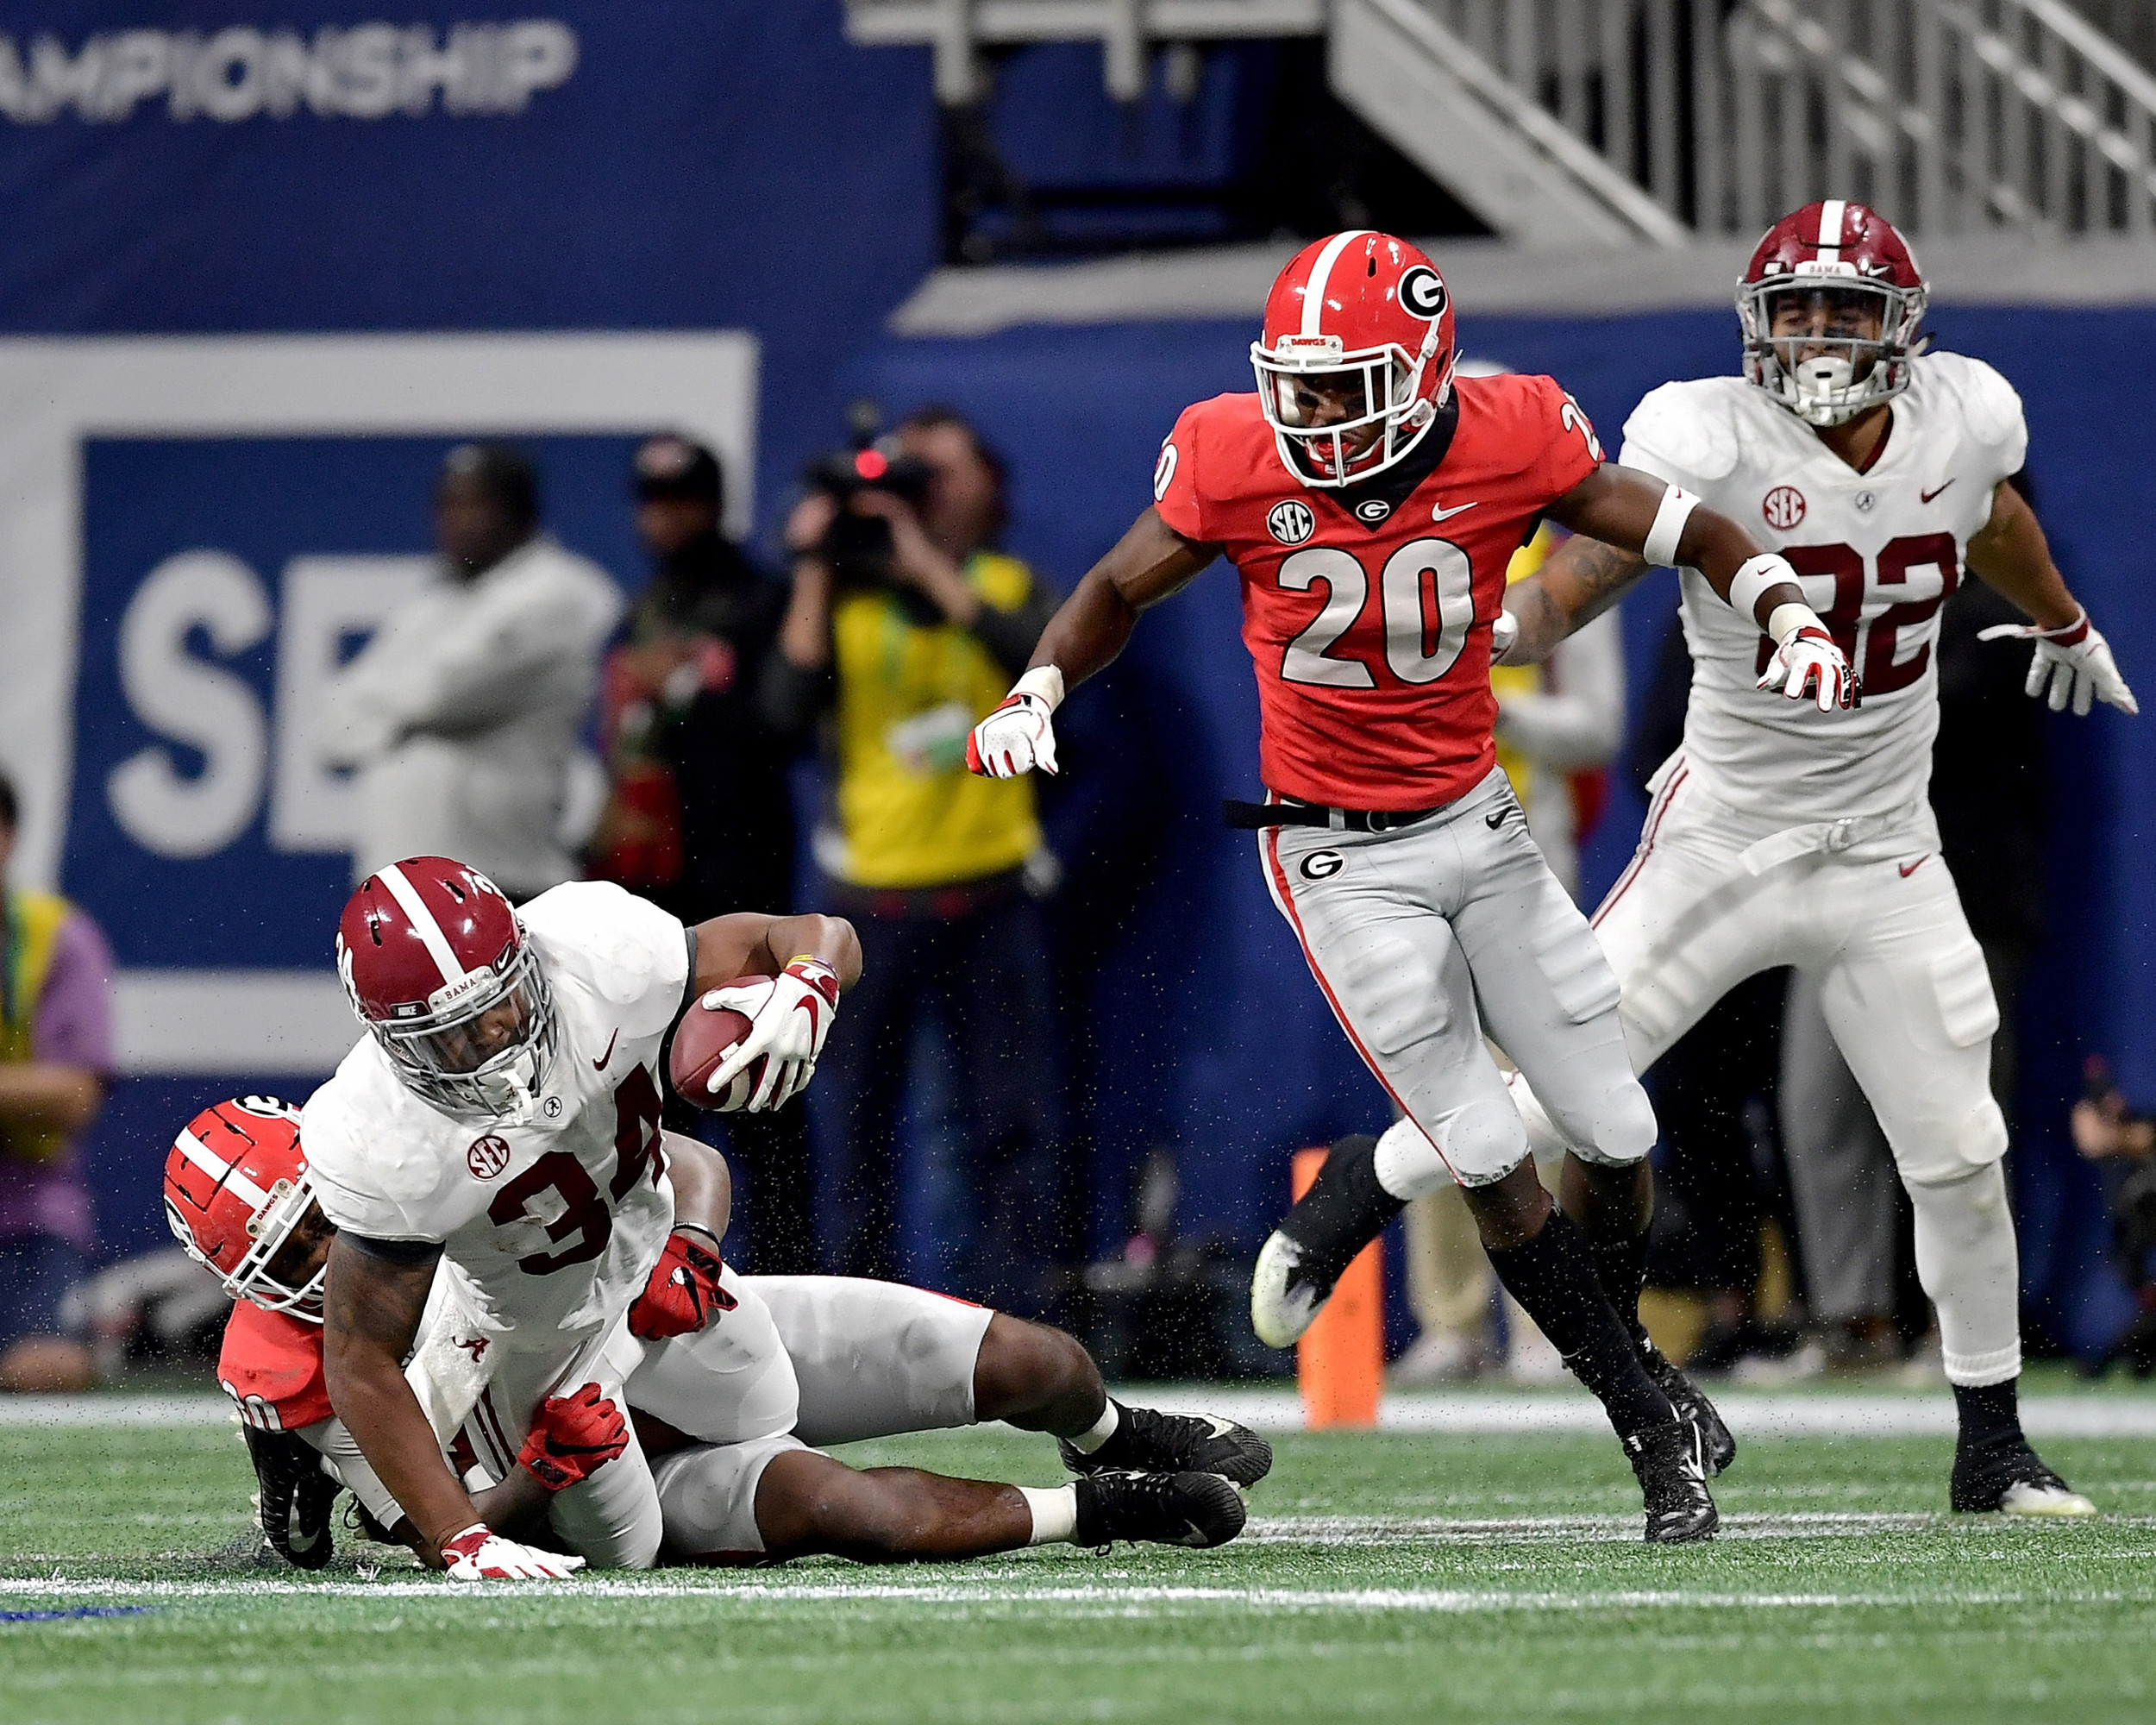 Alabama Crimson Tide running back Damien Harris (34) is tackled during the first half of the 2018 SEC Championship football game against the Georgia Bulldogs at Mercedes-Benz Stadium in Atlanta, Ga., on Dec. 1, 2018. Alabama wins 35-28. (Photo by Lee Walls)